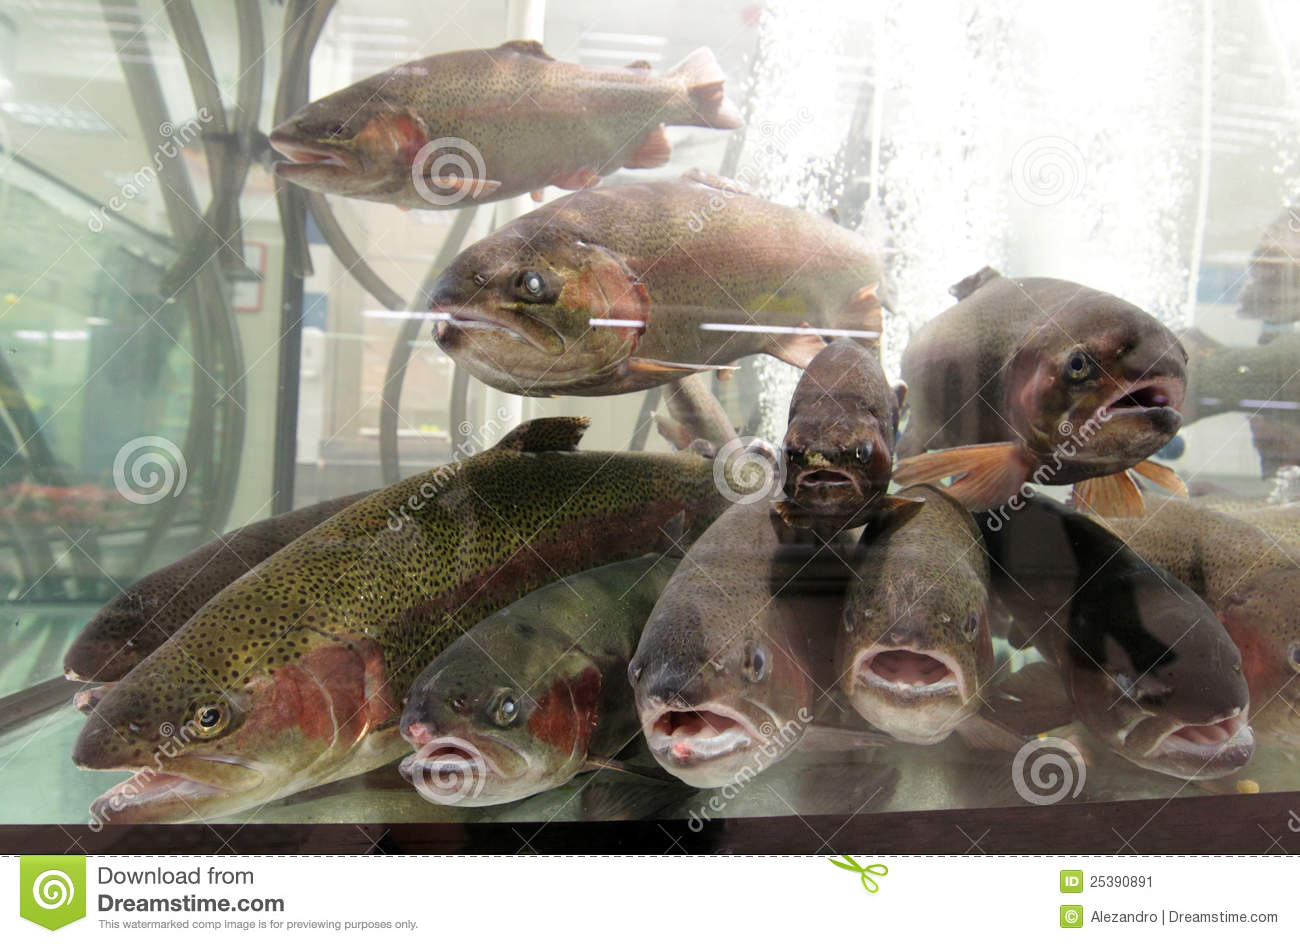 Live aquarium trout fish for sale stock image image for Fish for sale online